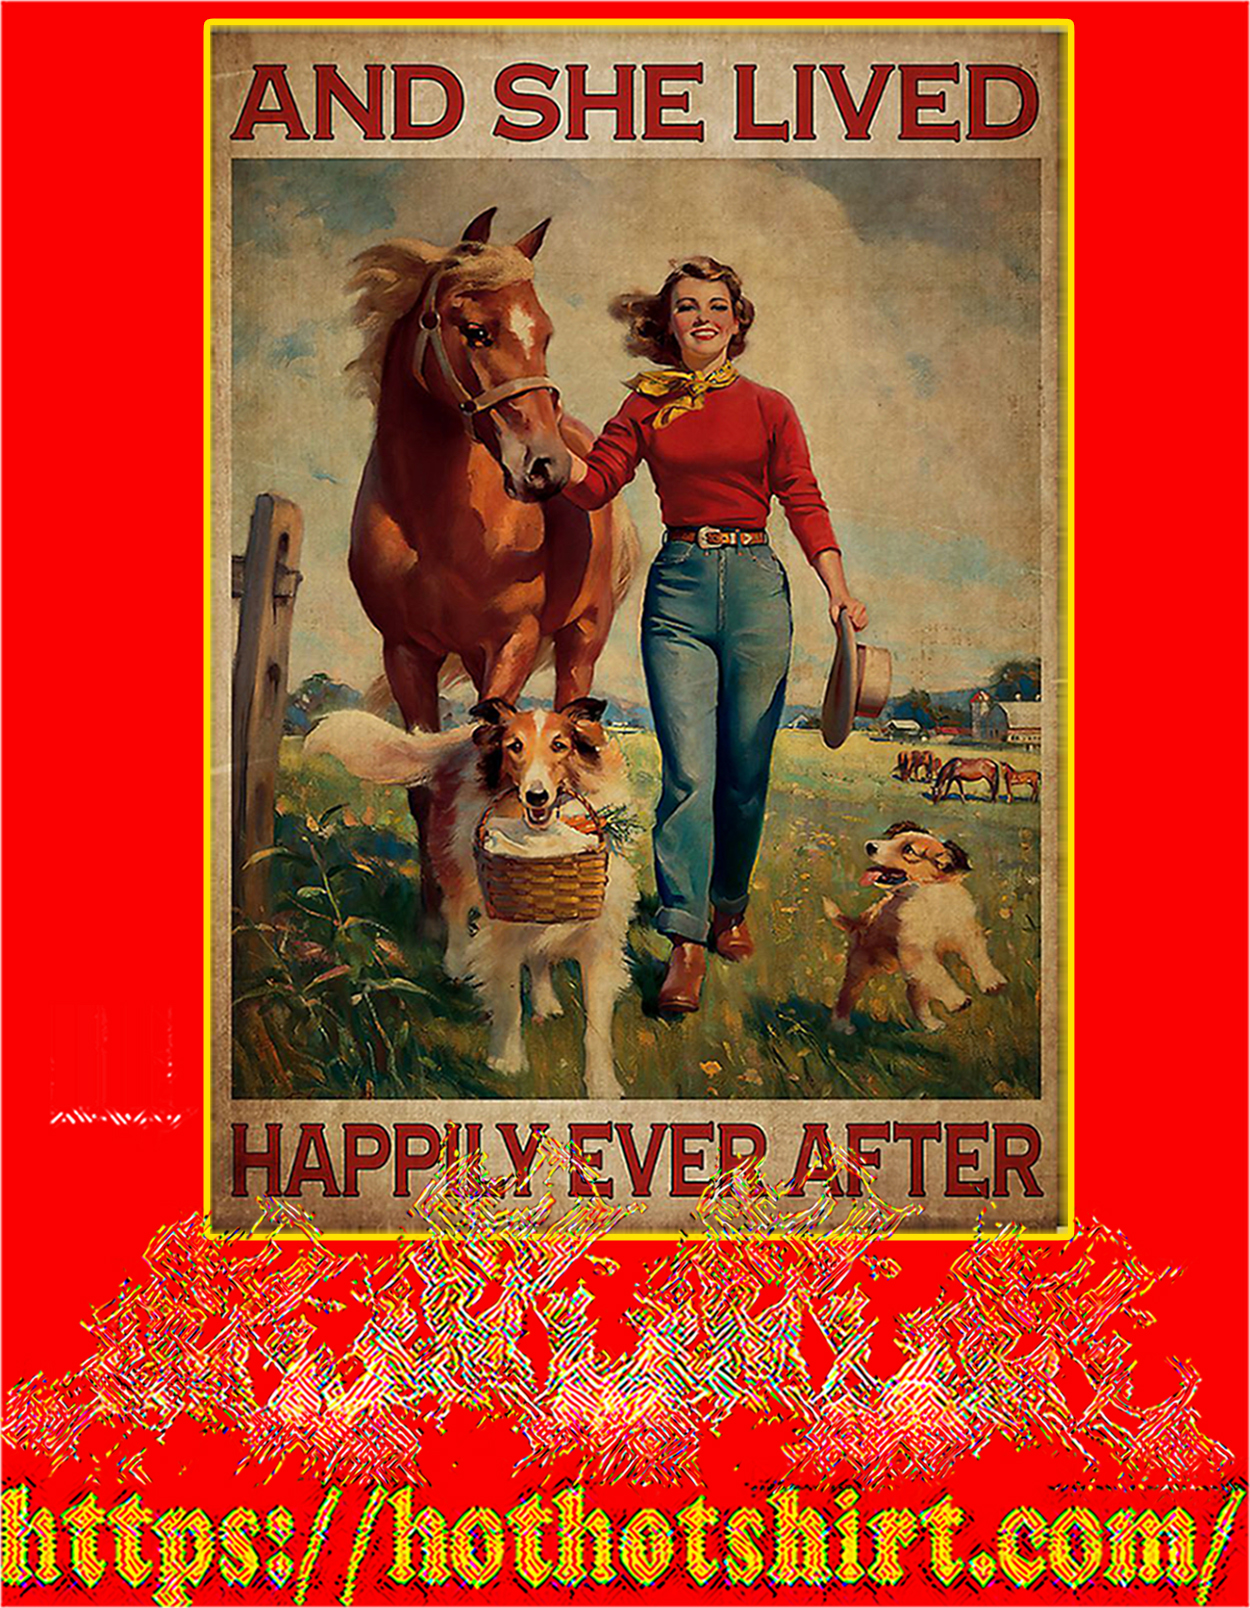 Dog and horse And she lived happily ever after poster - A2